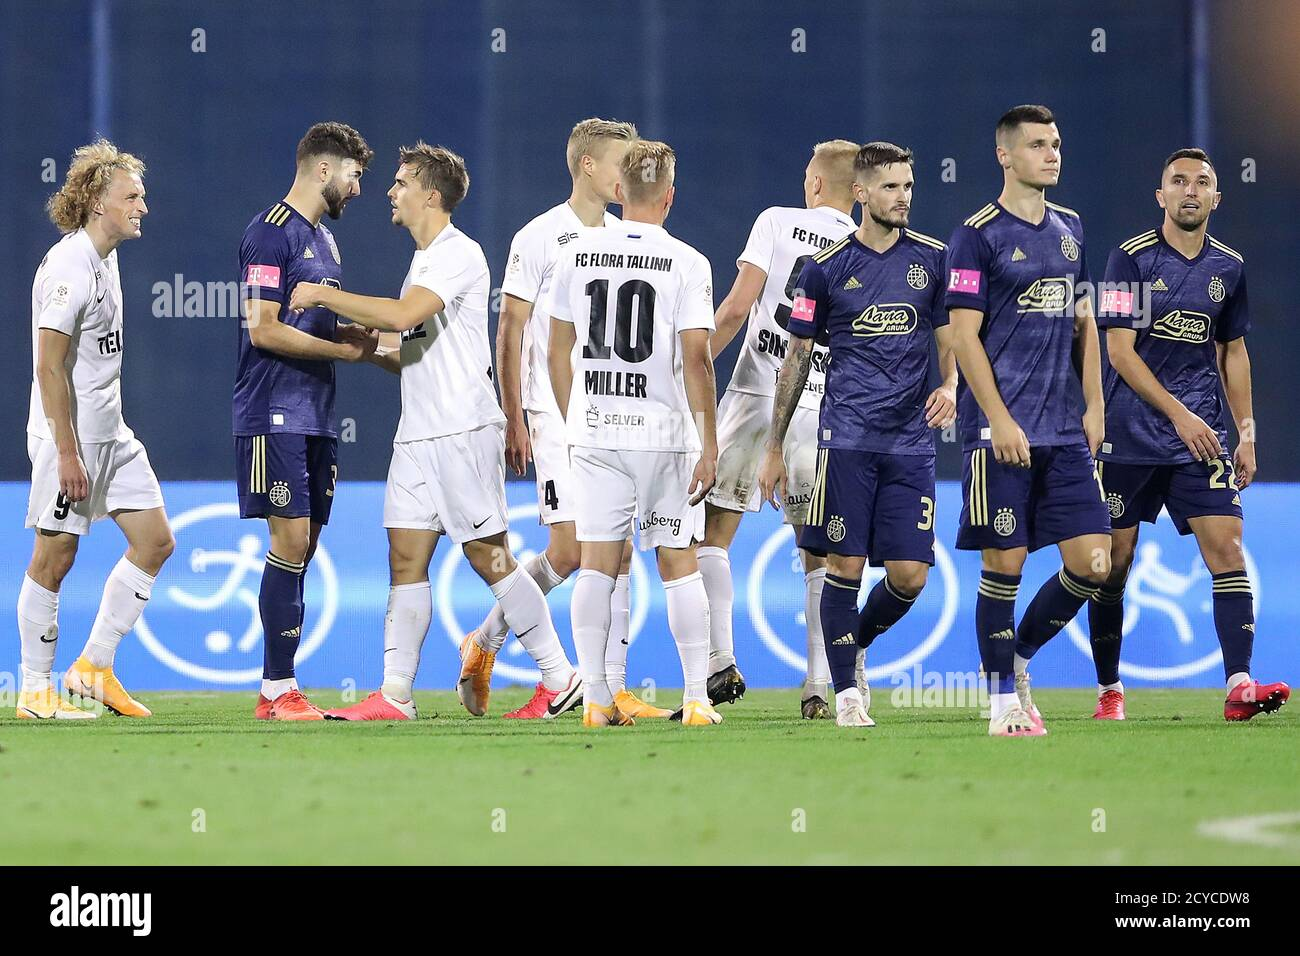 Dinamo Zagreb High Resolution Stock Photography And Images Page 7 Alamy